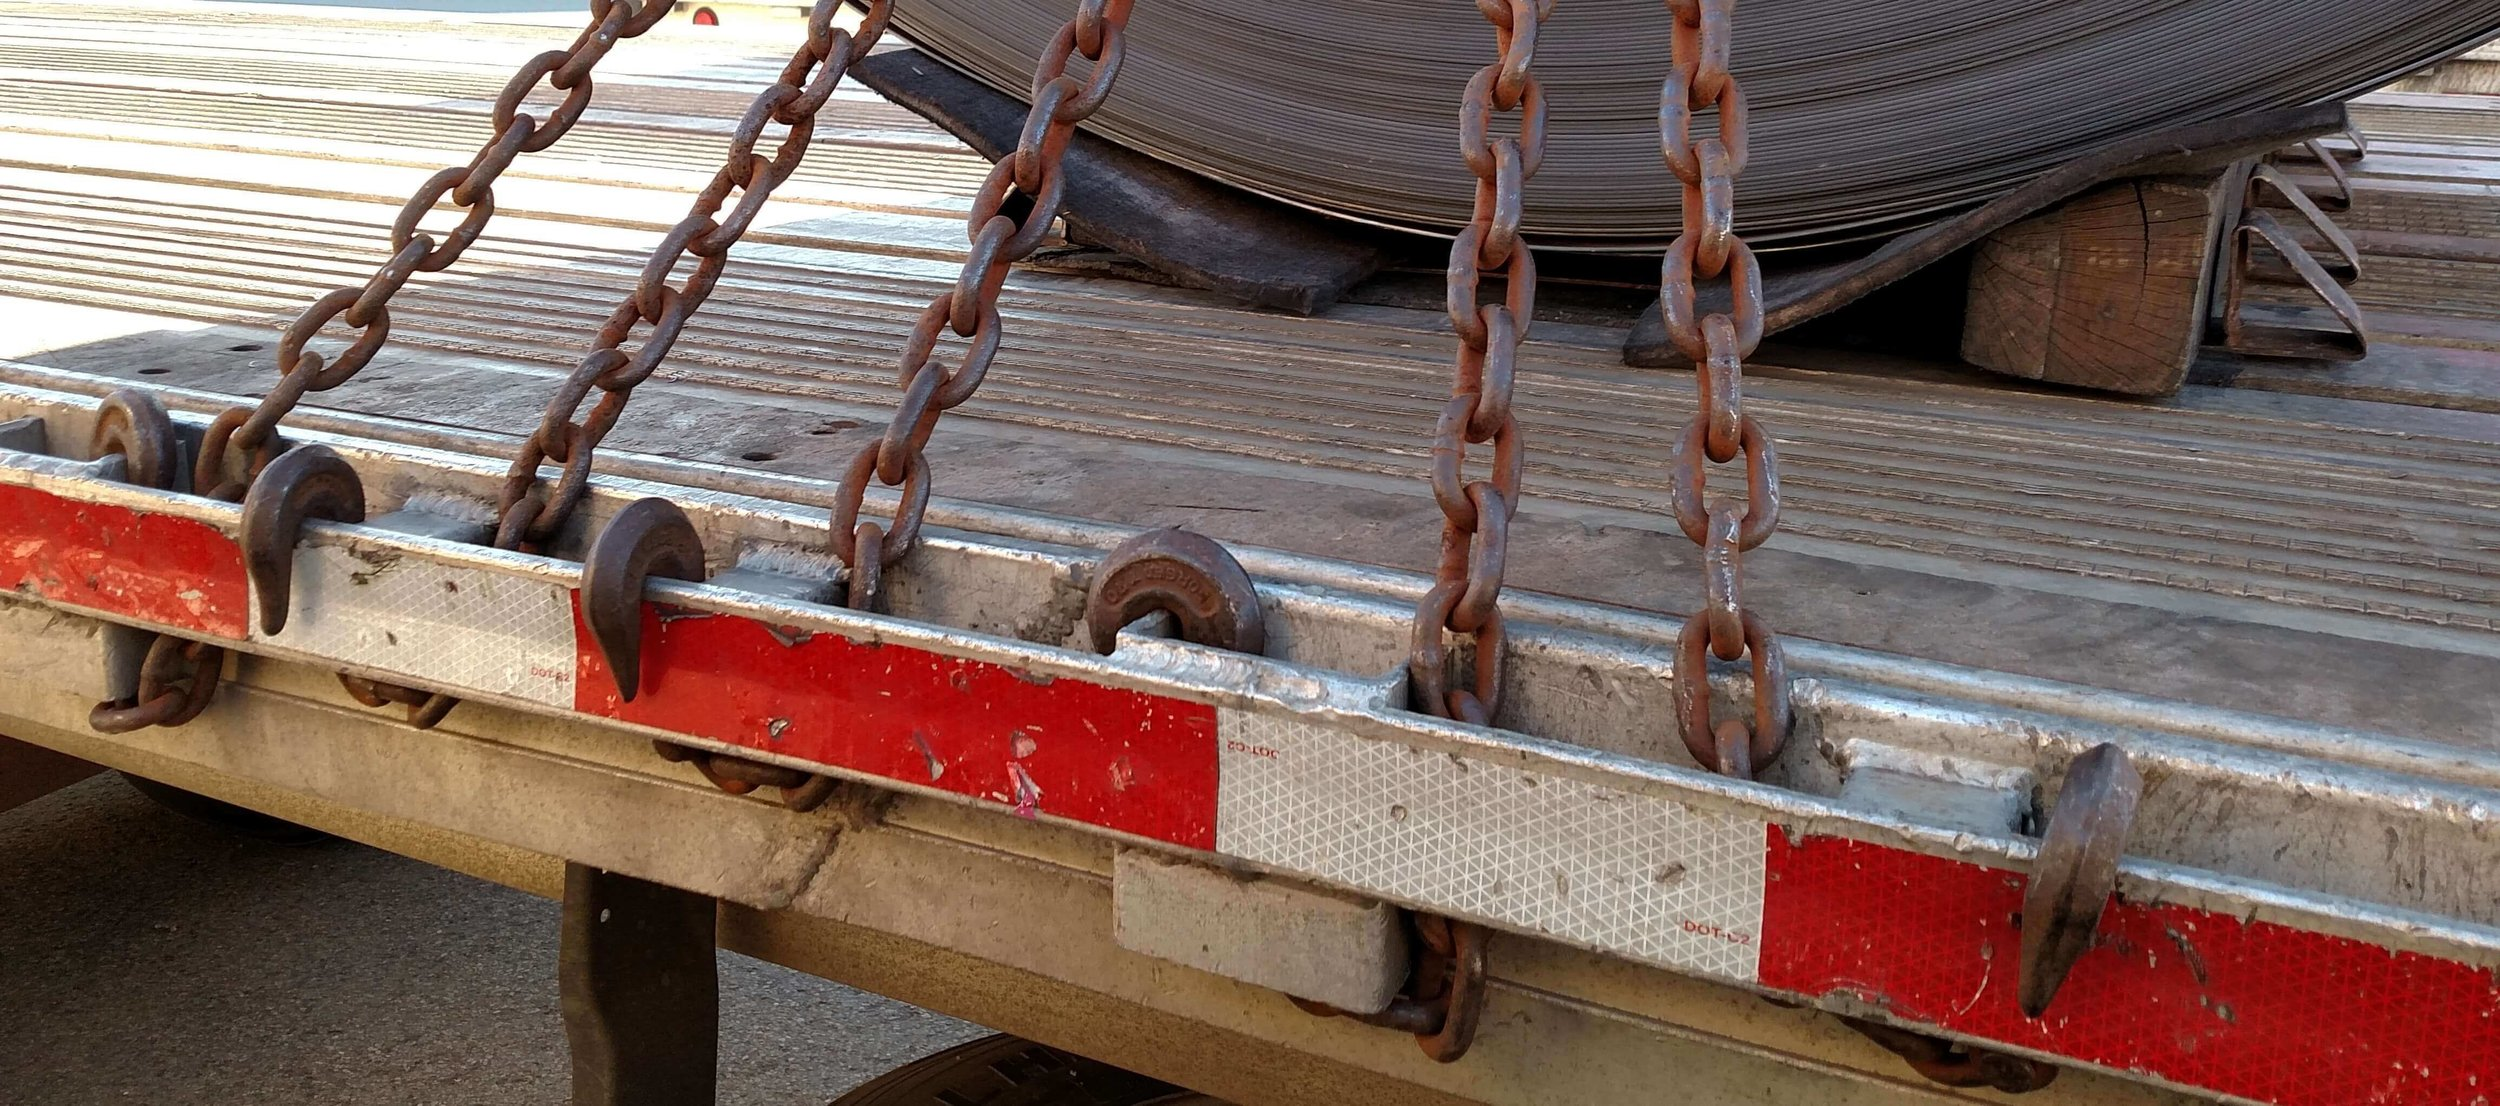 J-3:  Chains are hooked on rub-rail, and not taking advantage of the stronger spools and stake pockets. The hooks protrude outside rub-rail.